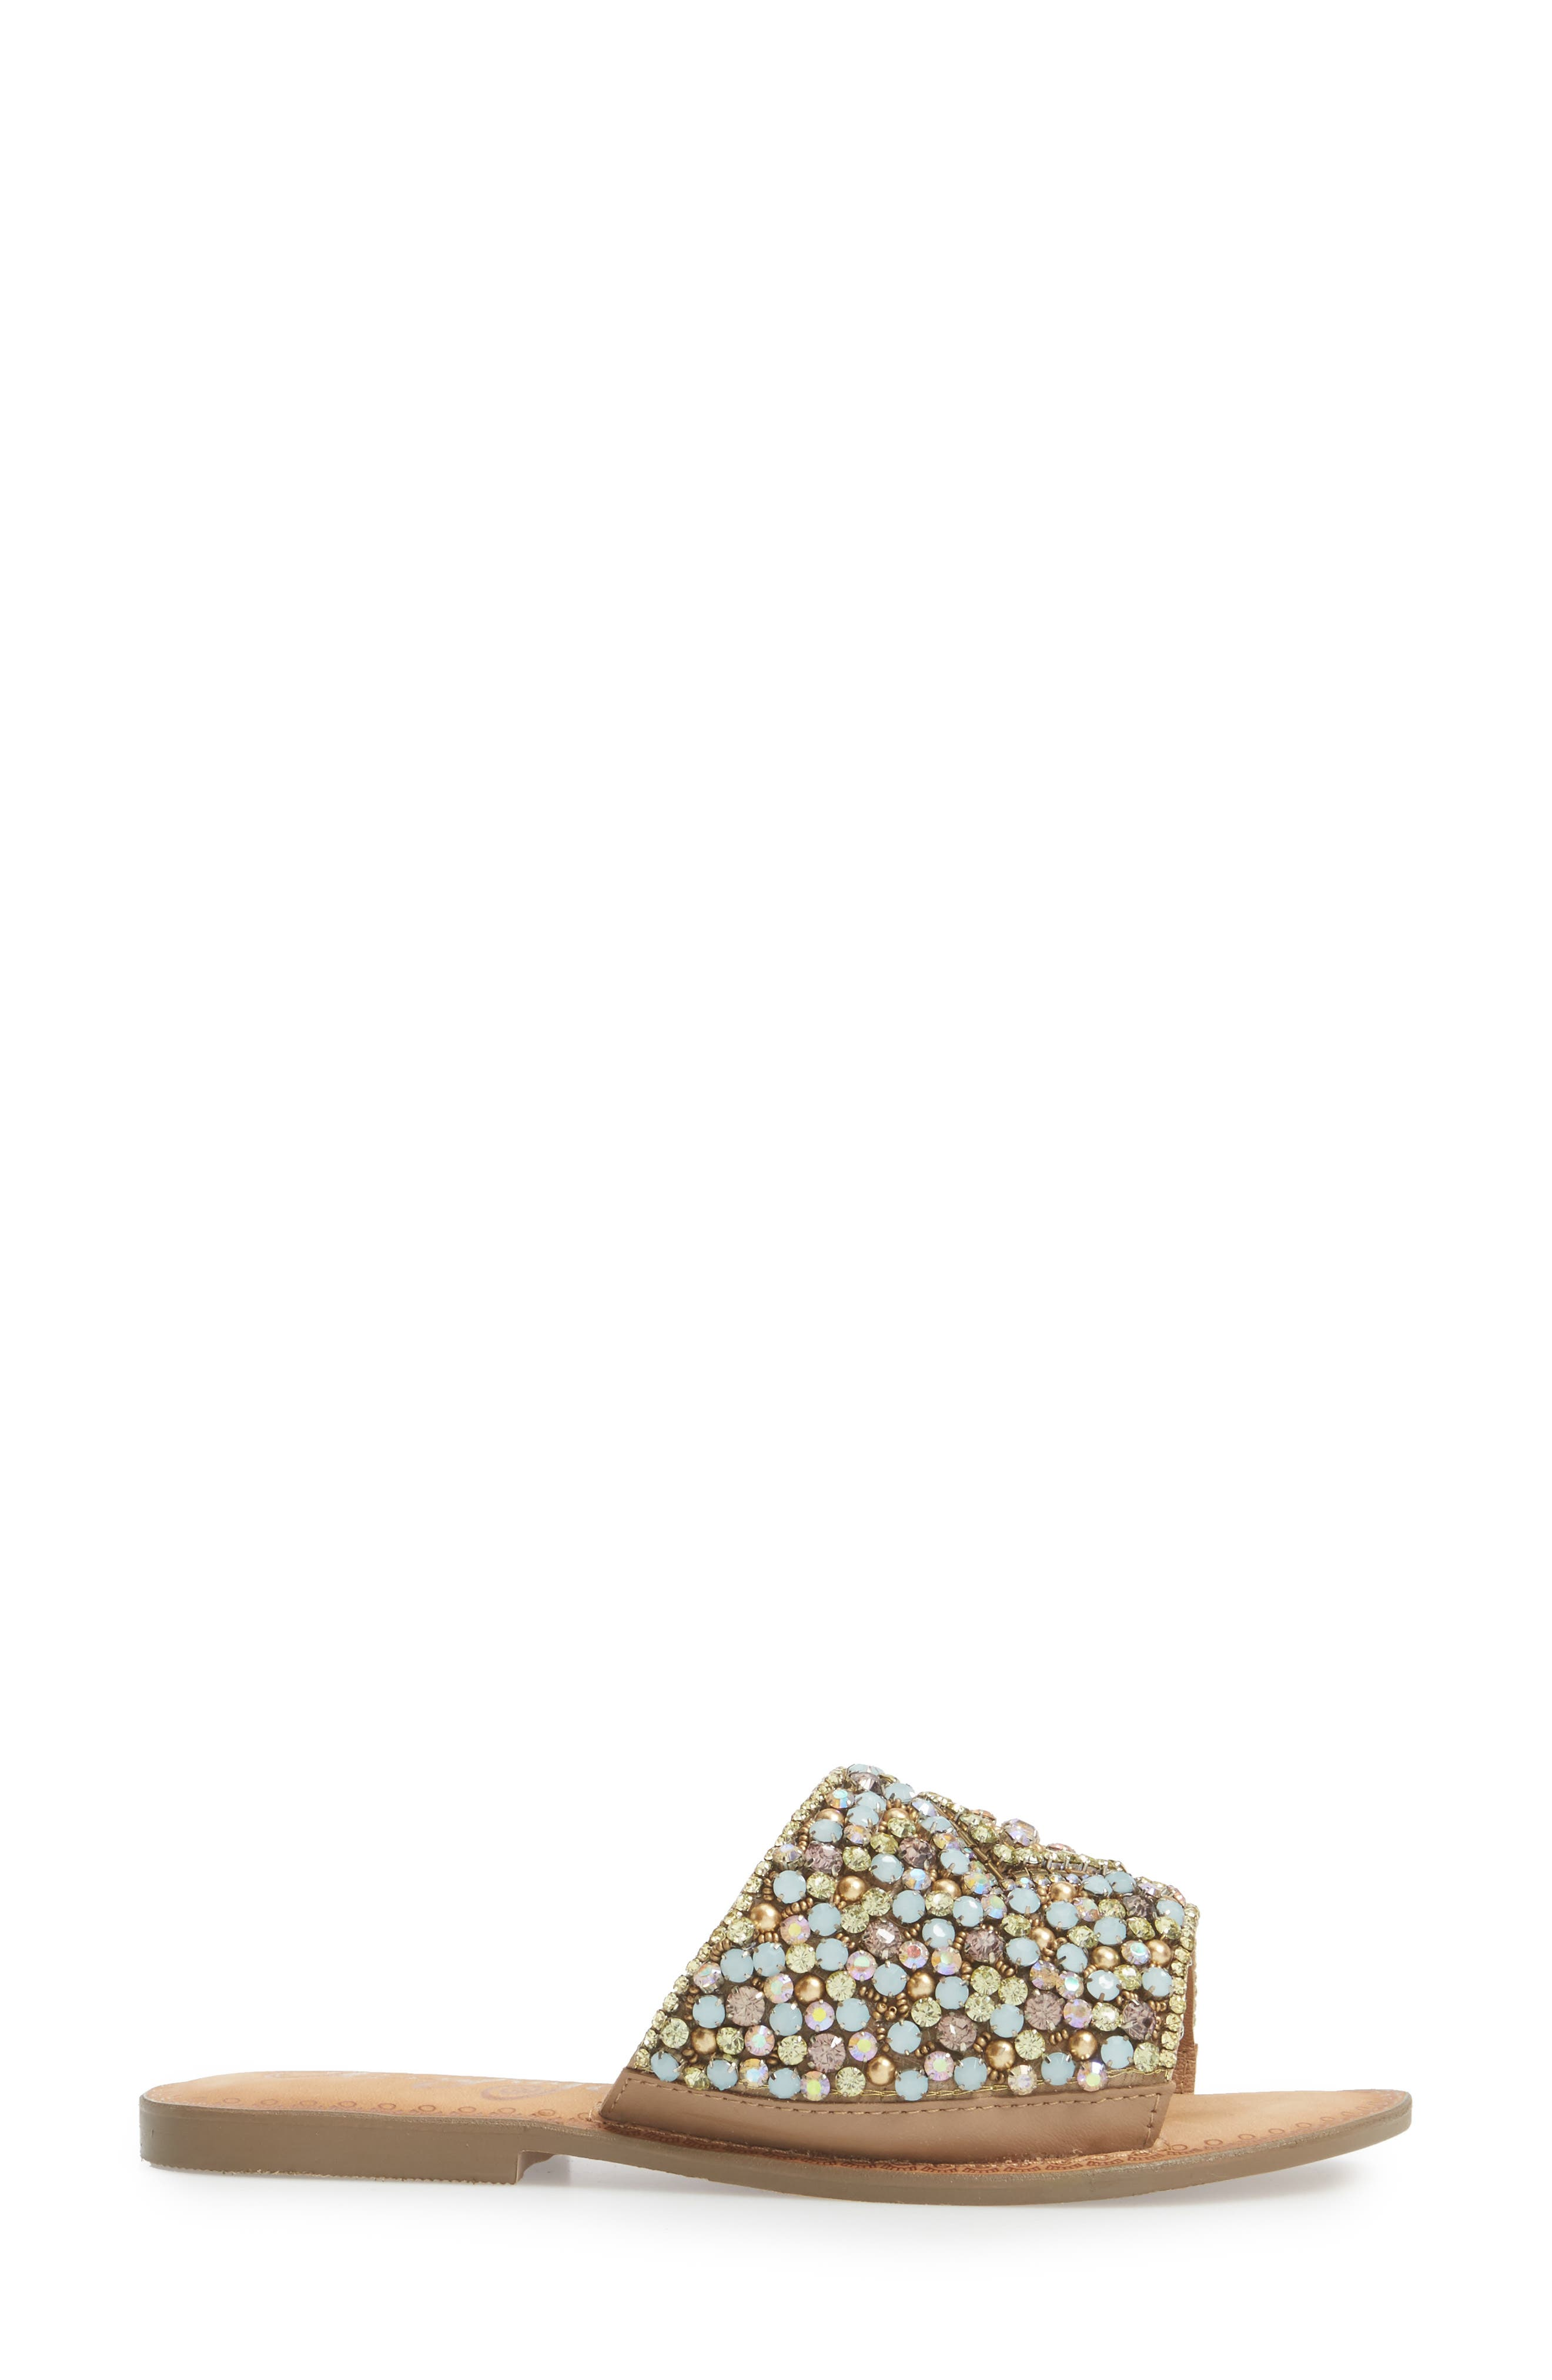 Susanna Embellished Slide Sandal,                             Alternate thumbnail 3, color,                             040